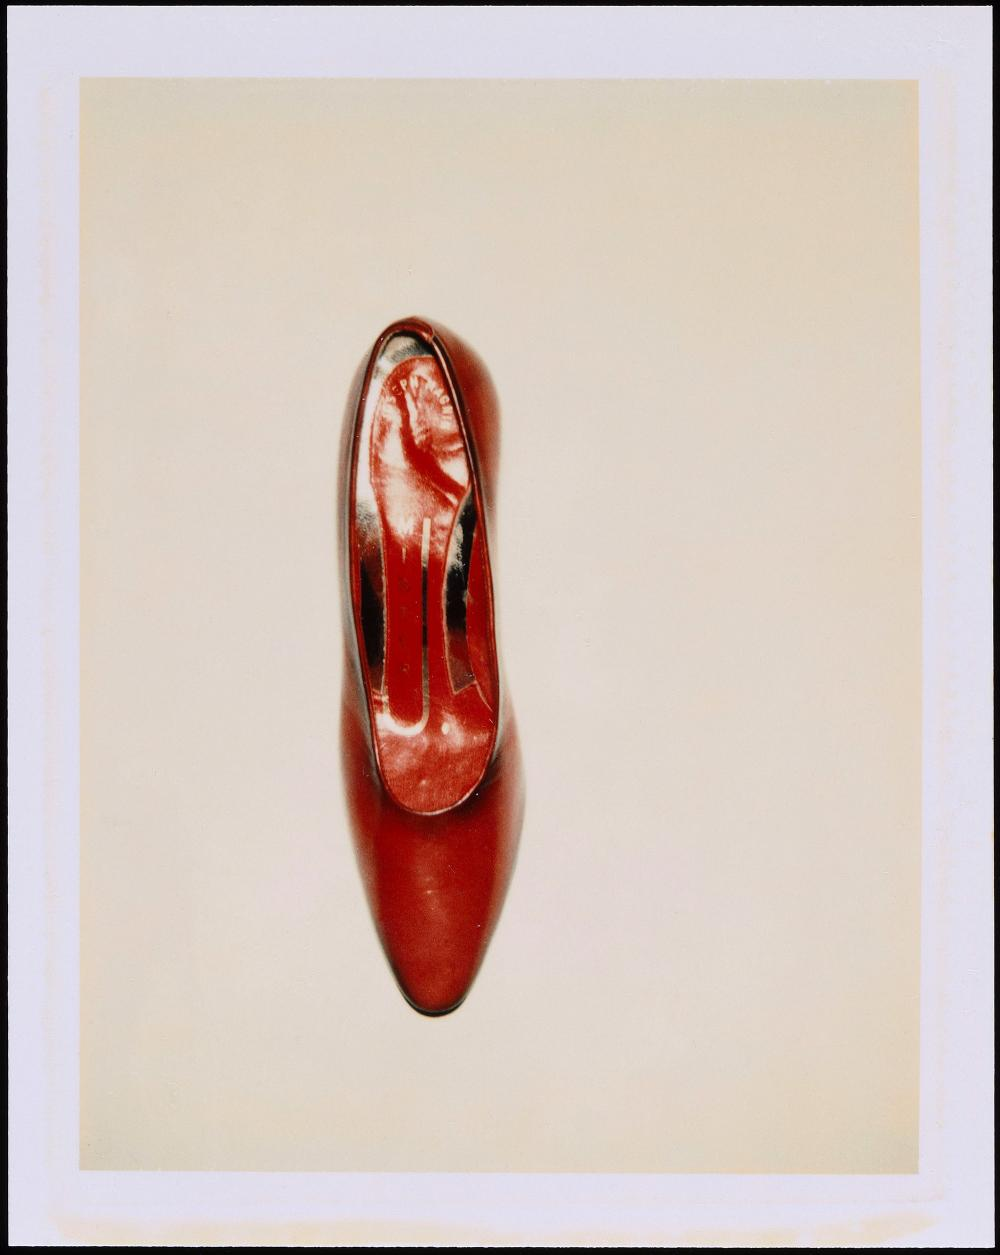 Womens' Shoes (Chaussures de femmes), 1981© Andy Warhol© The Andy Warhol Foundation for the Visual Arts, Inc.© Centre Pompidou, MNAM-CCI/Philippe Migeat/Dist. RMN-GP© Adagp, Paris© SABAM Belgium 2018